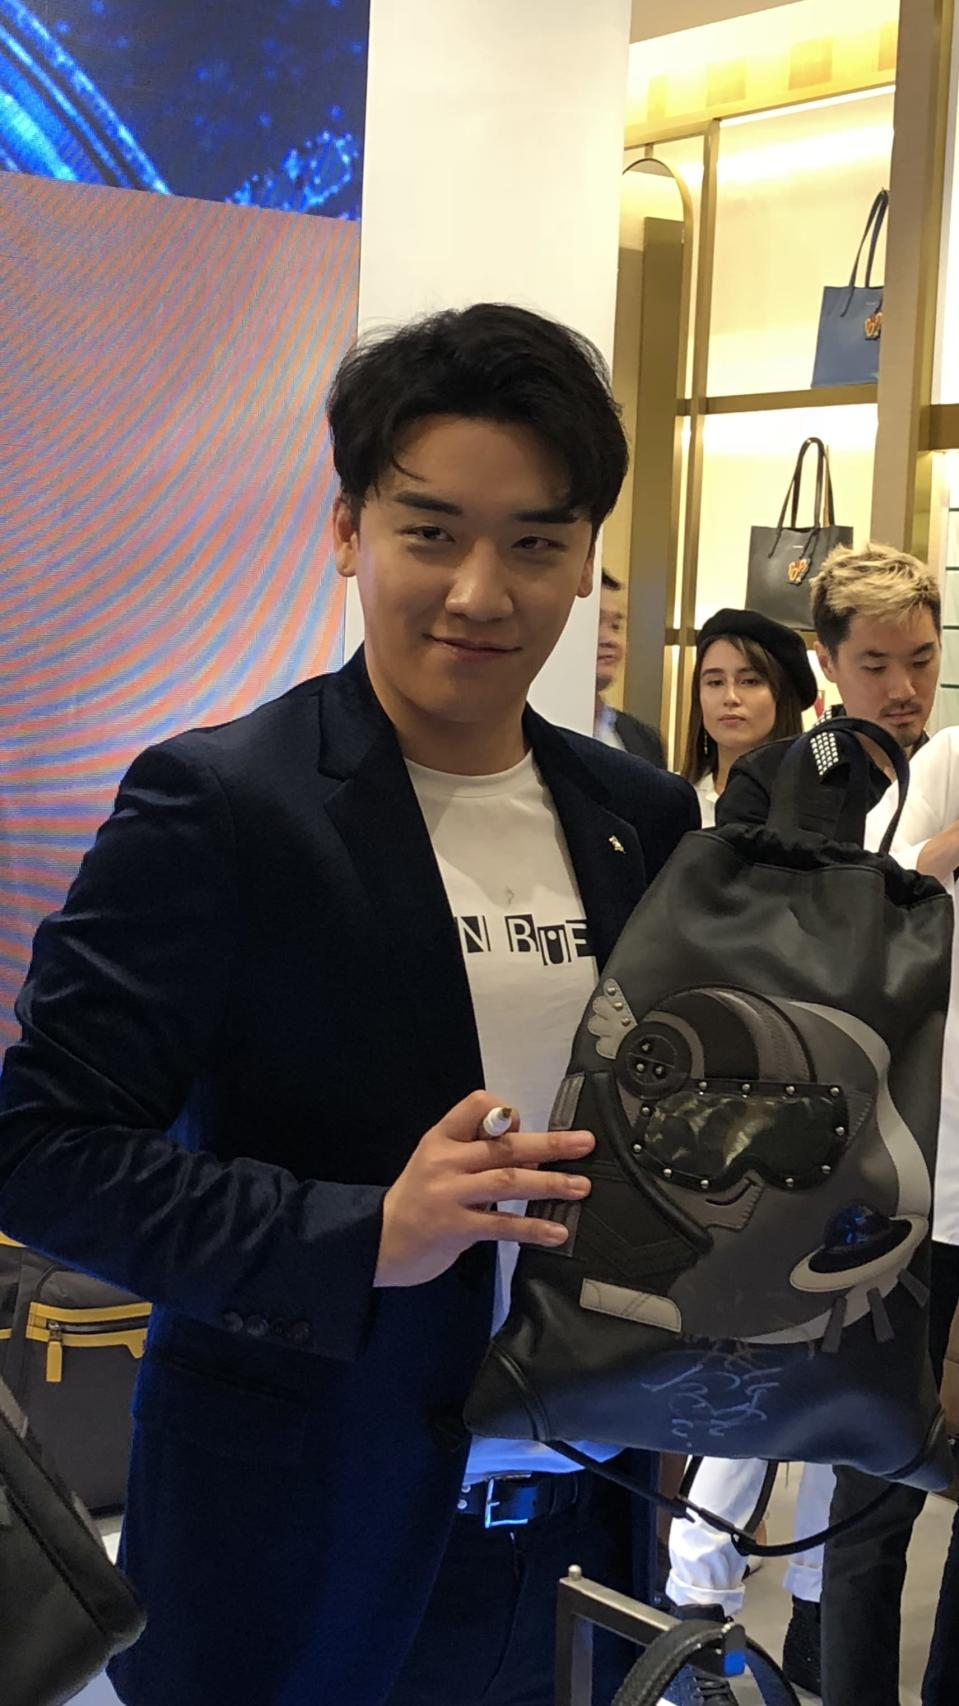 Seungri autographing merchandise for fans. (Photo: Wenting/Yahoo Lifestyle)